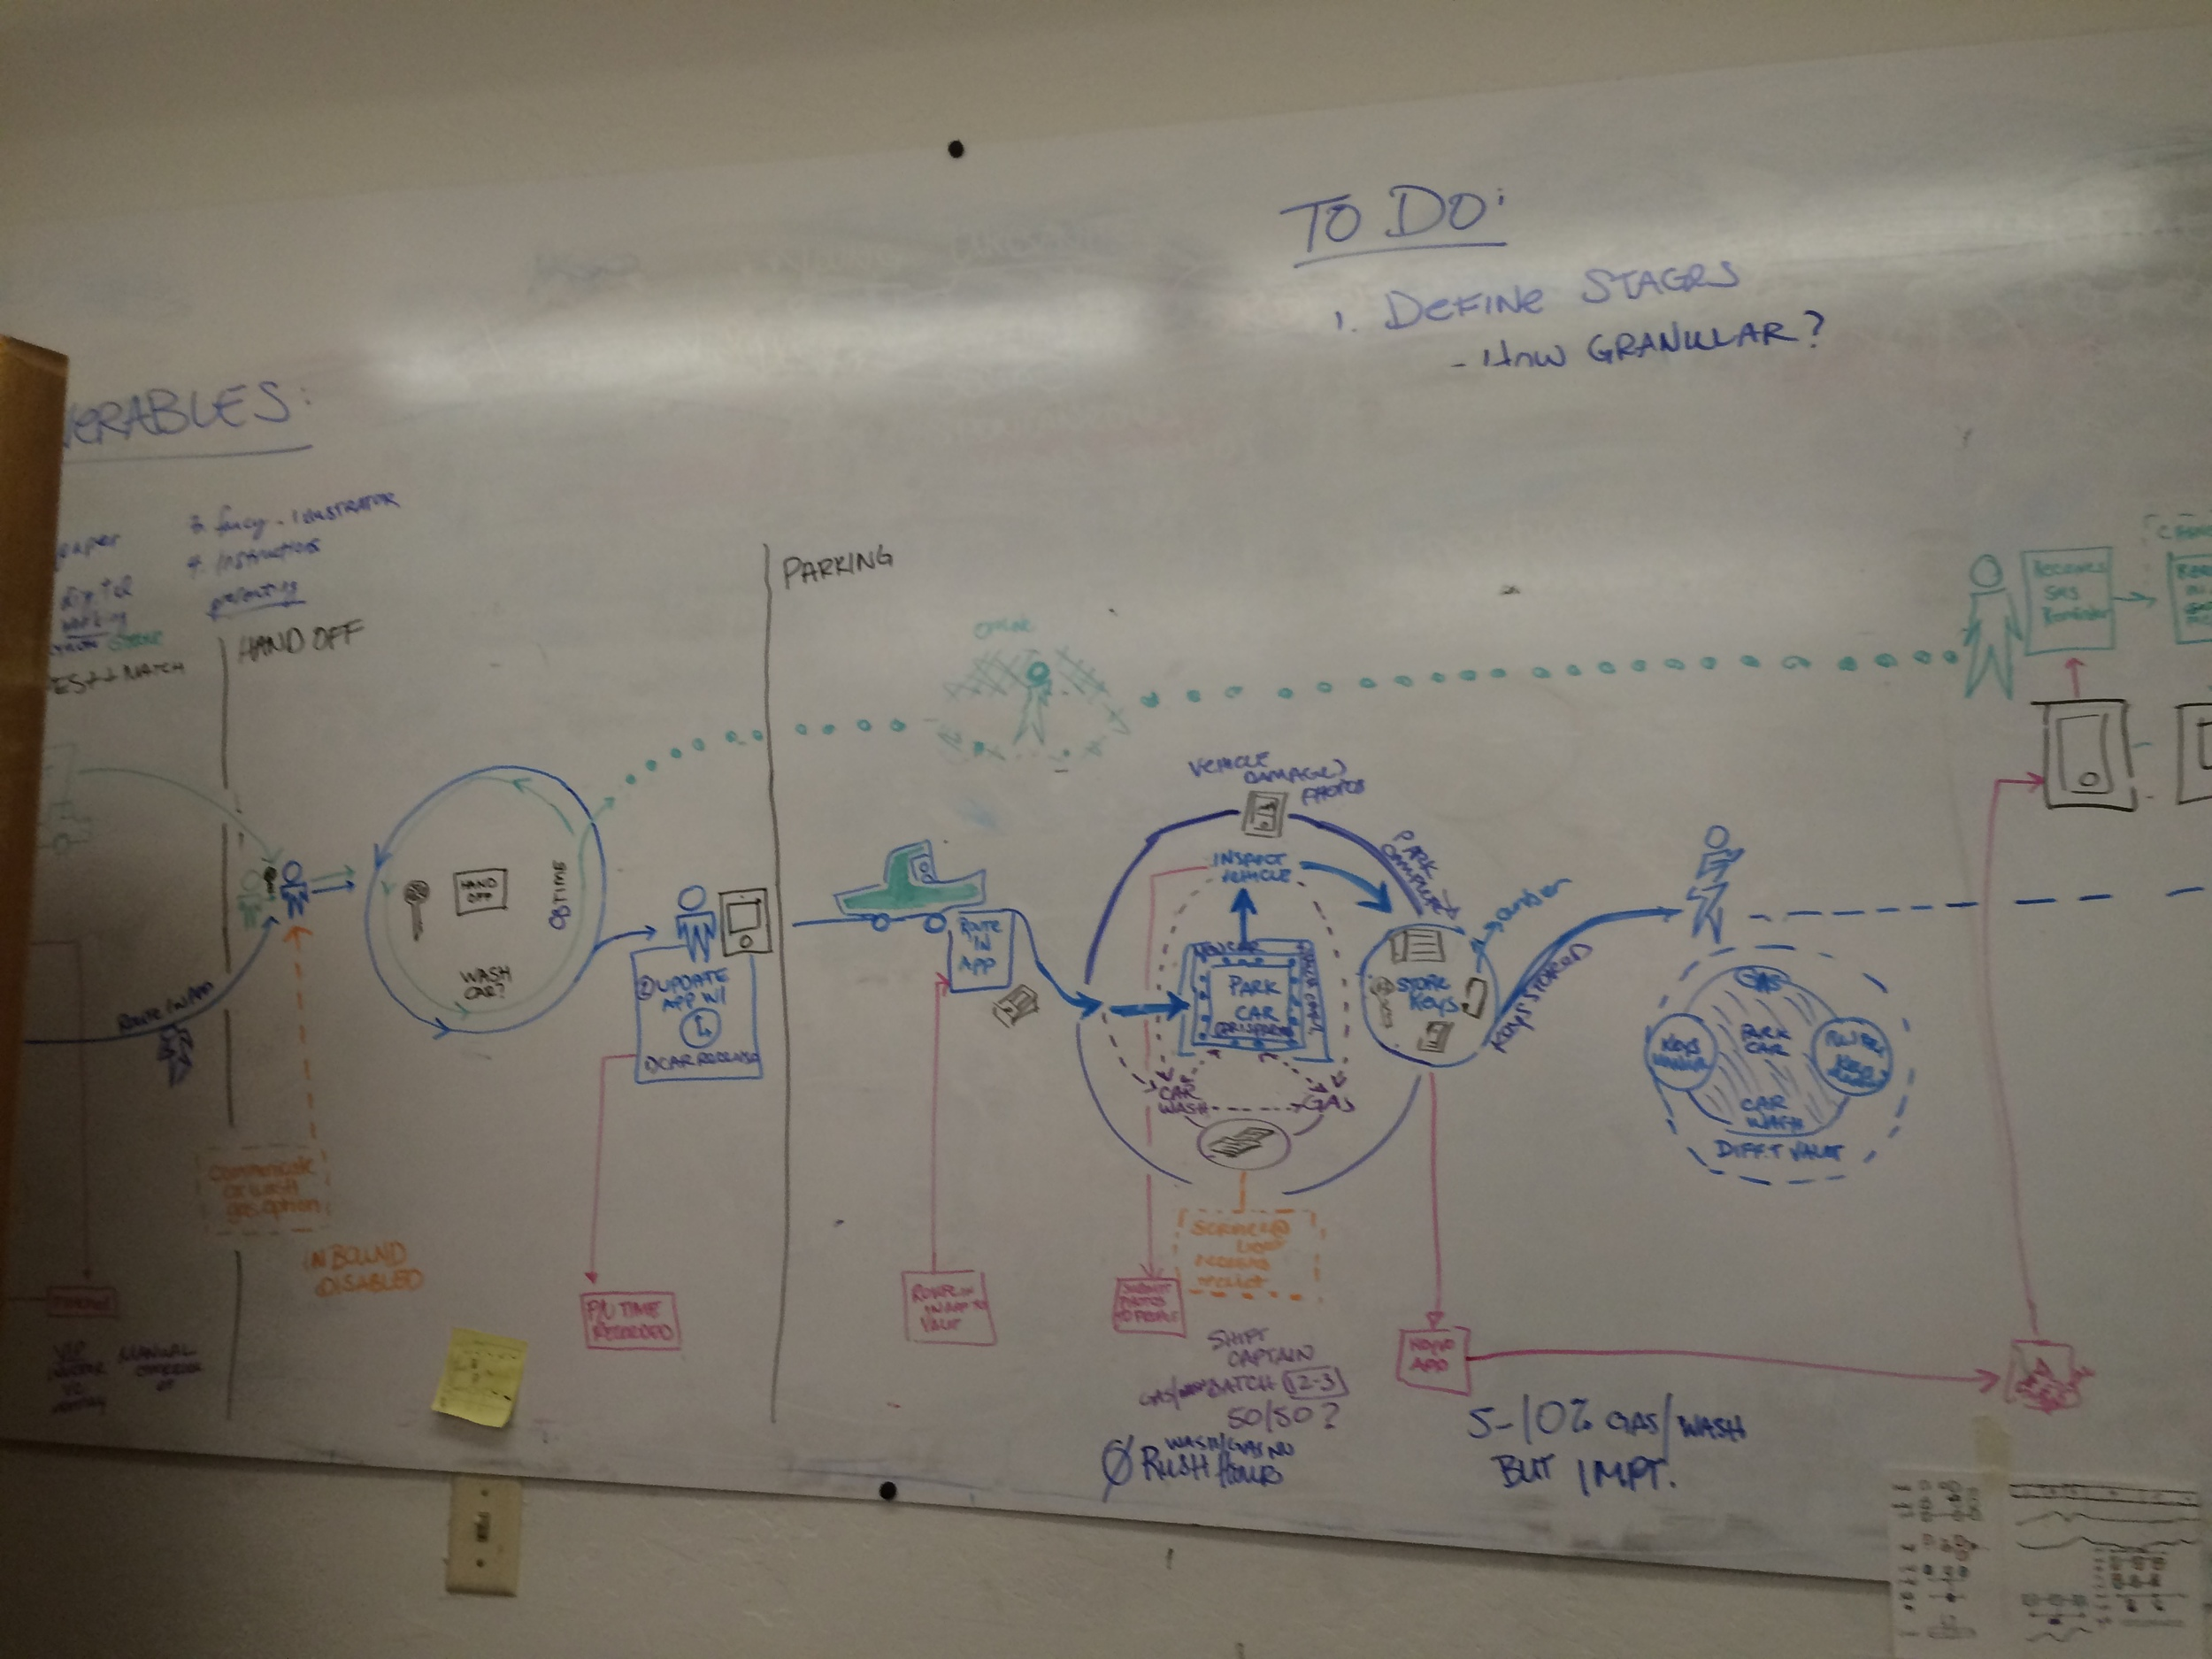 Initial whiteboard session